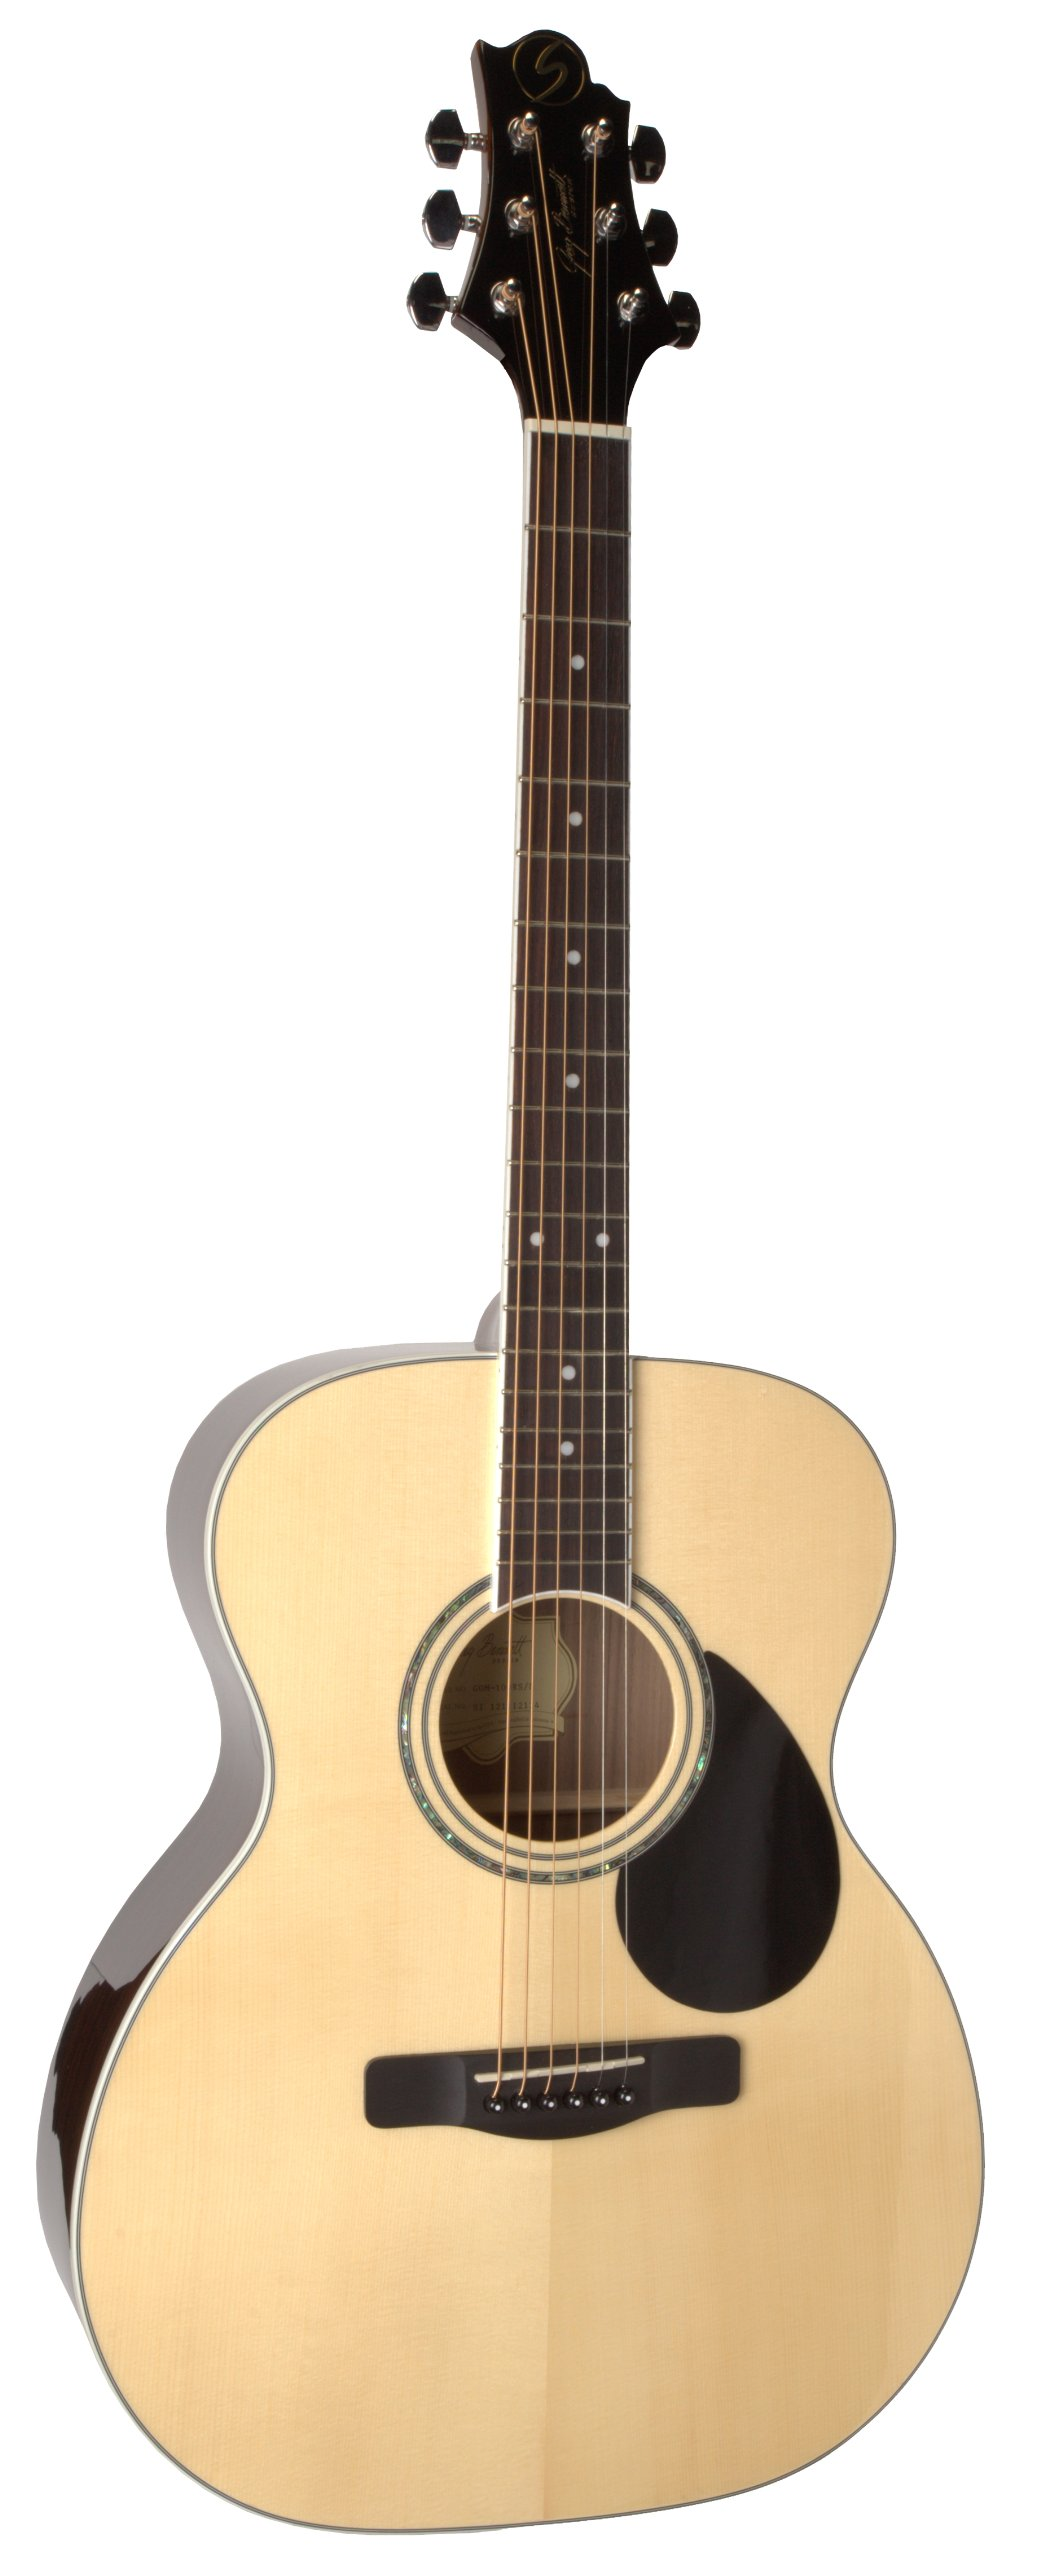 Samick Music G Series 100 GOM100RS Orchestra Body Acoustic Guitar, Natural by Samick